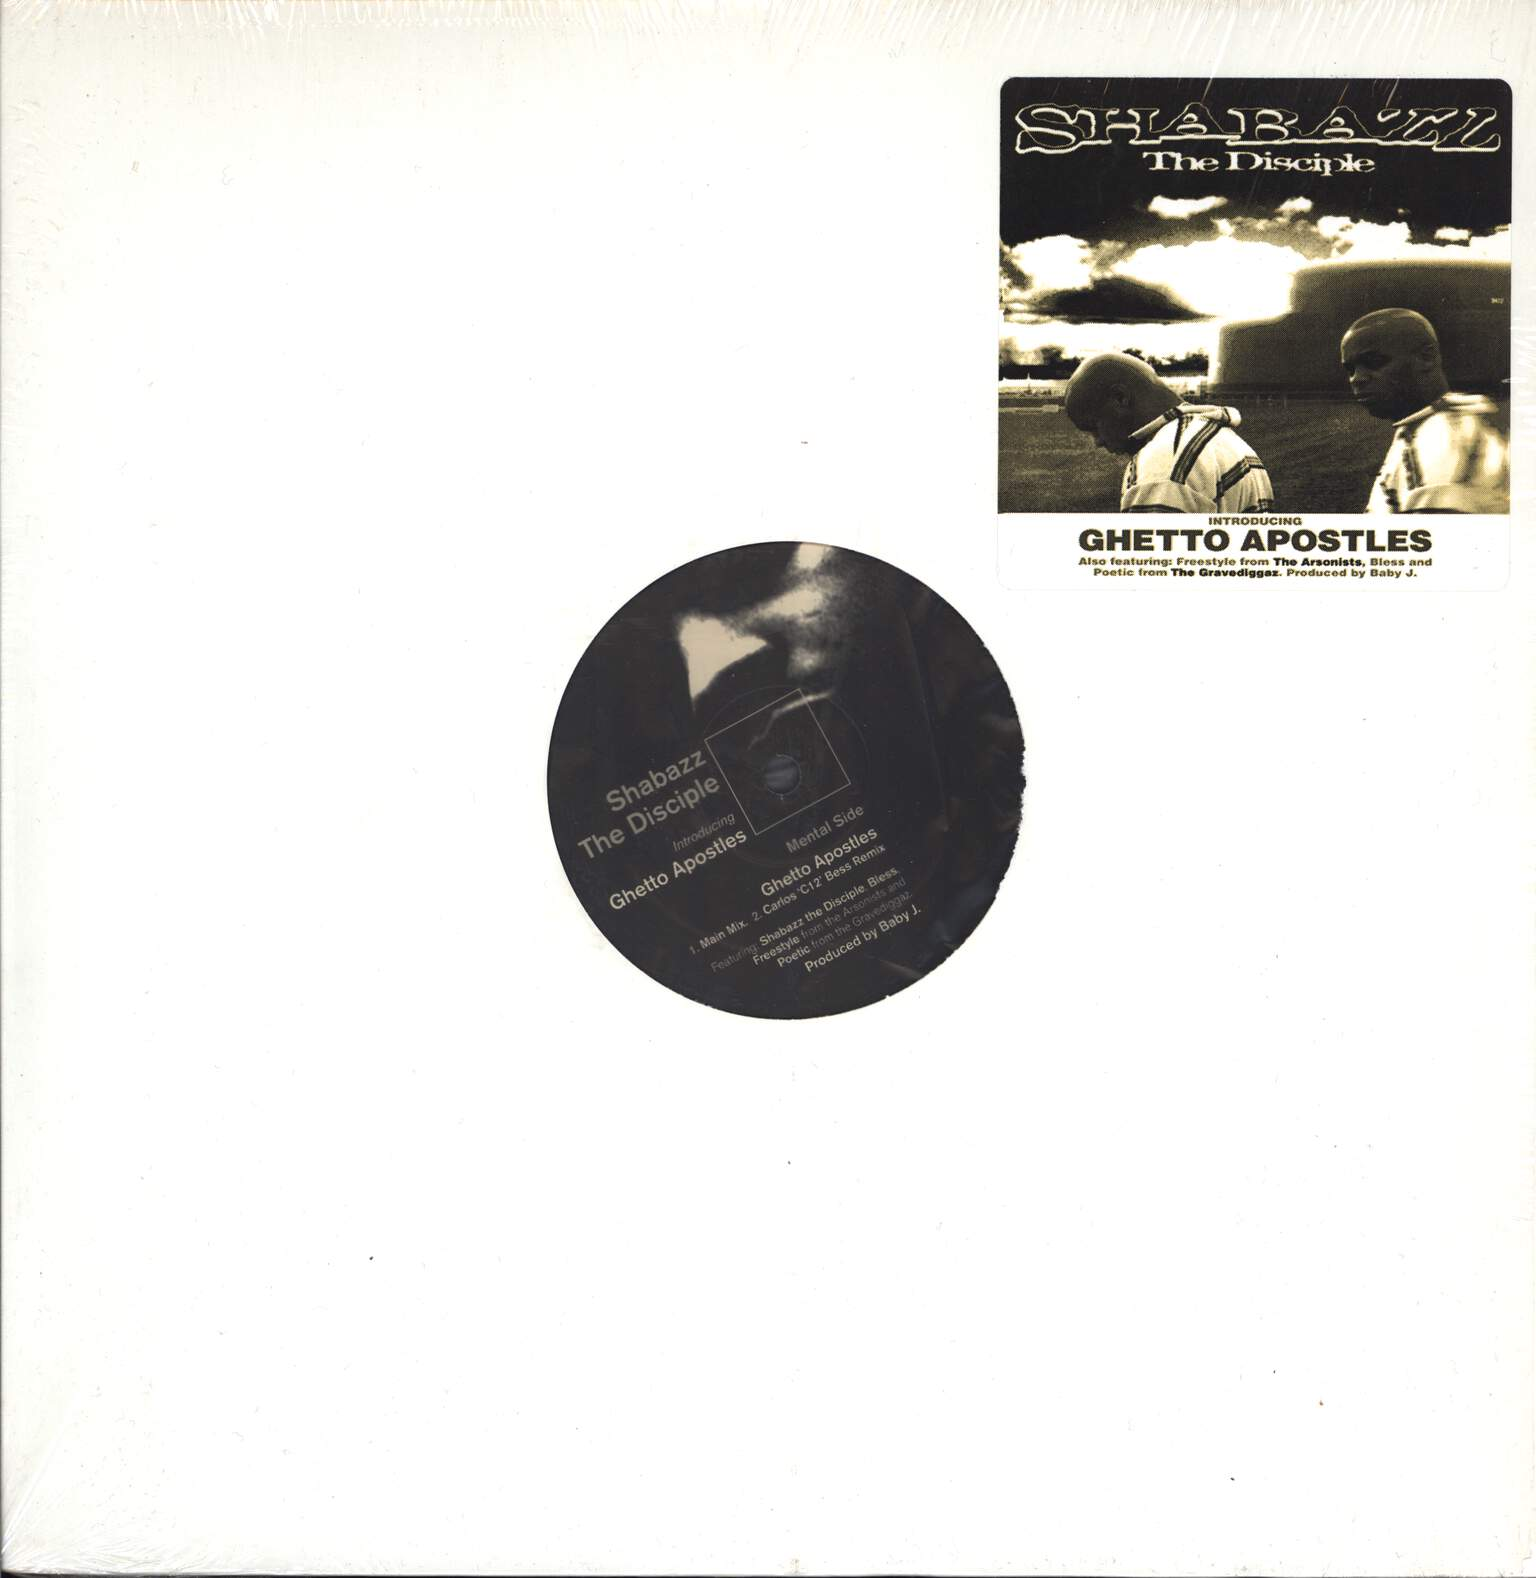 "Shabazz the Disciple: Introducing: Ghetto Apostles, 12"" Maxi Single (Vinyl)"